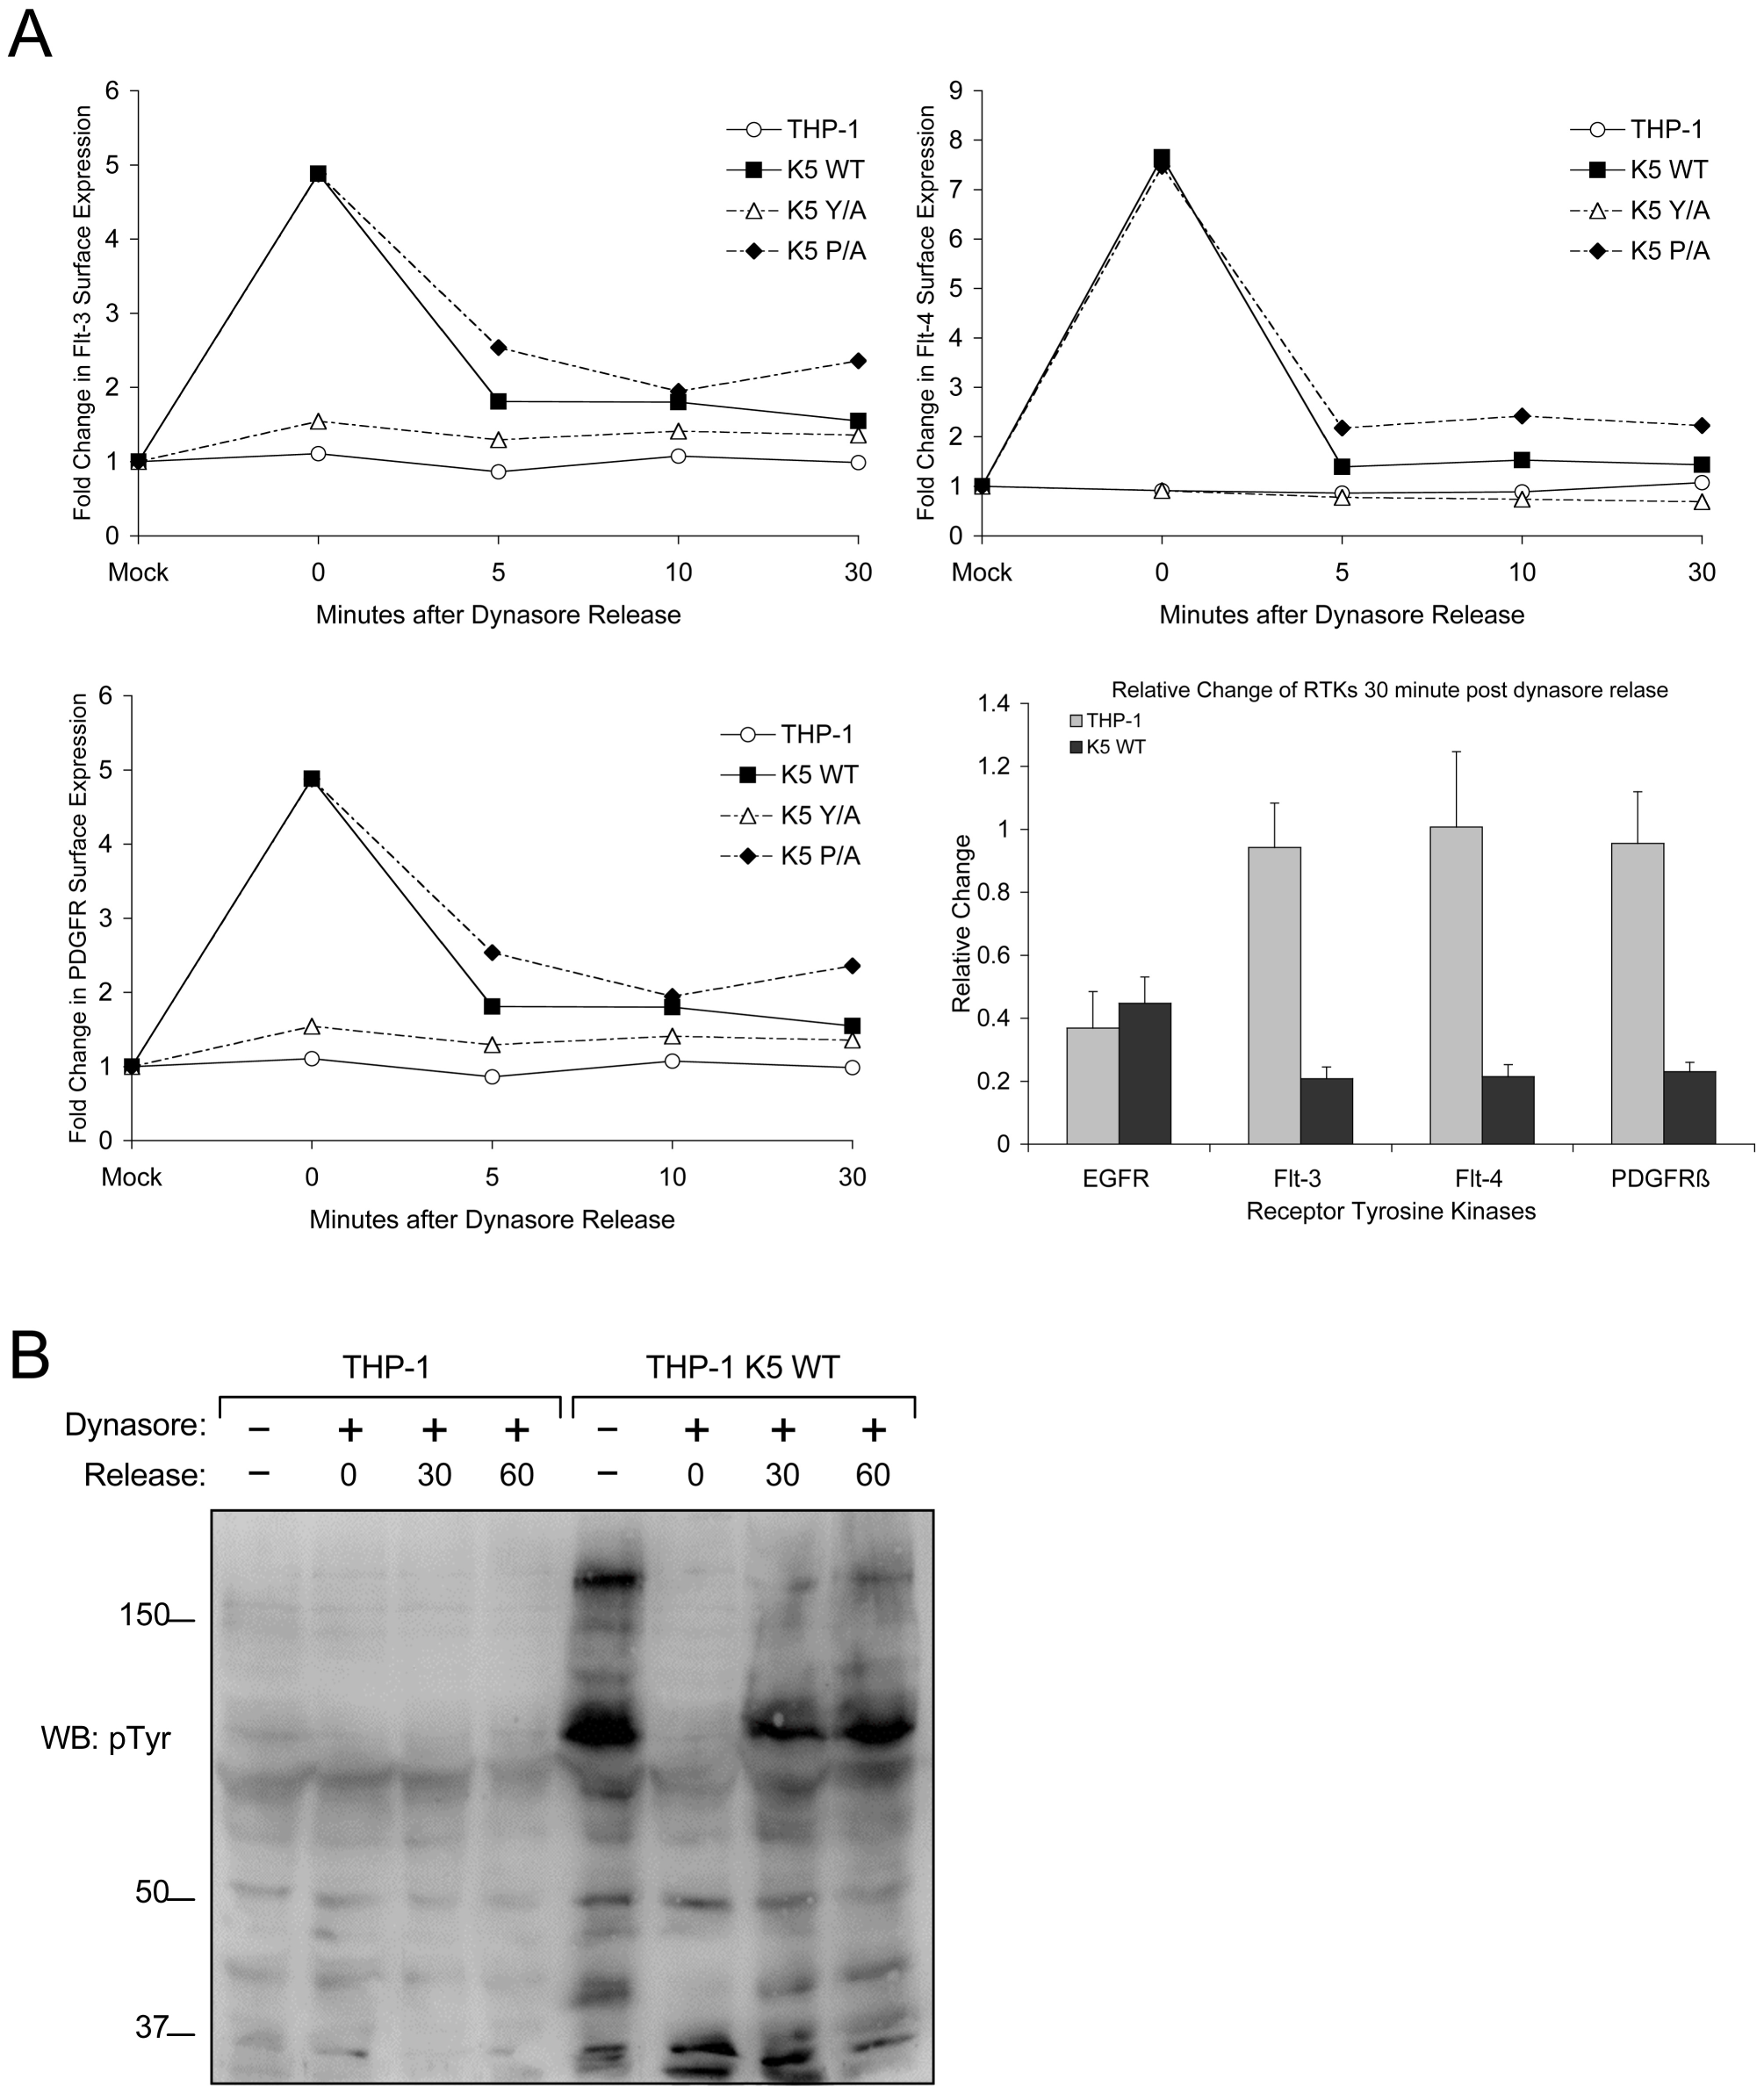 K5 mediates rapid internalization of RTKs from the surface leading to increased signaling.